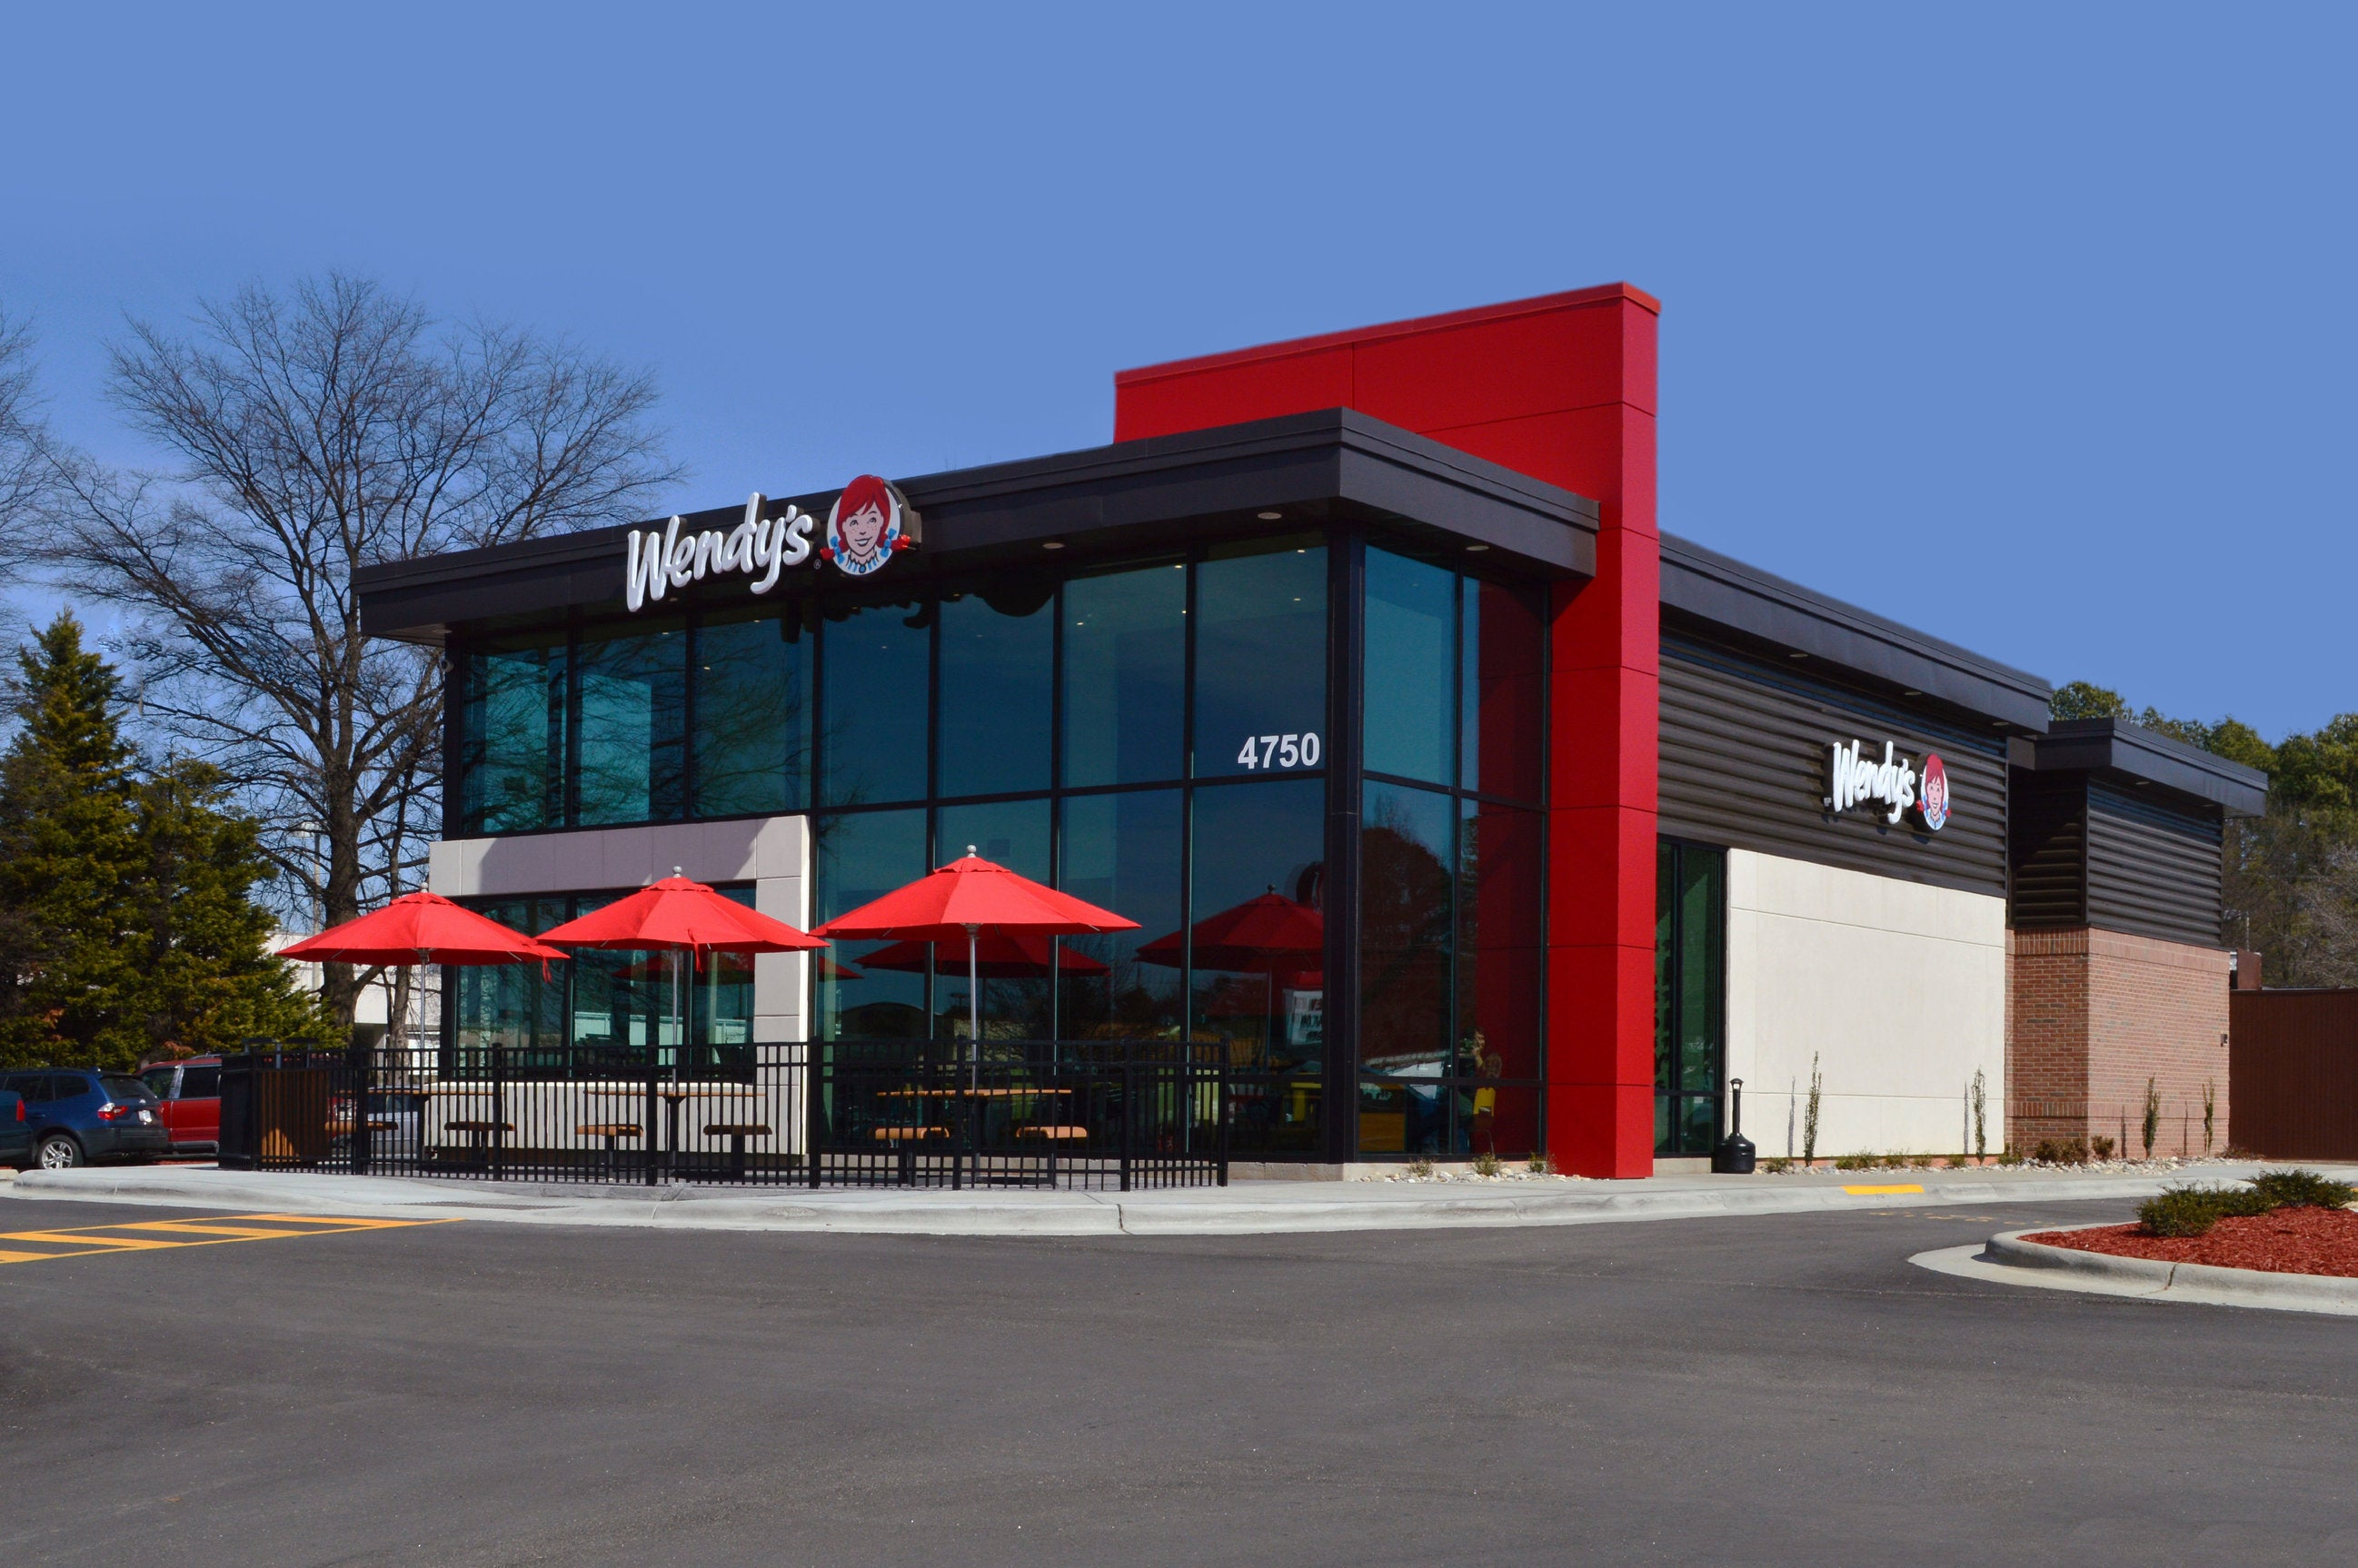 Results at Wendy's Pave a Clear Path to 2020 Goals